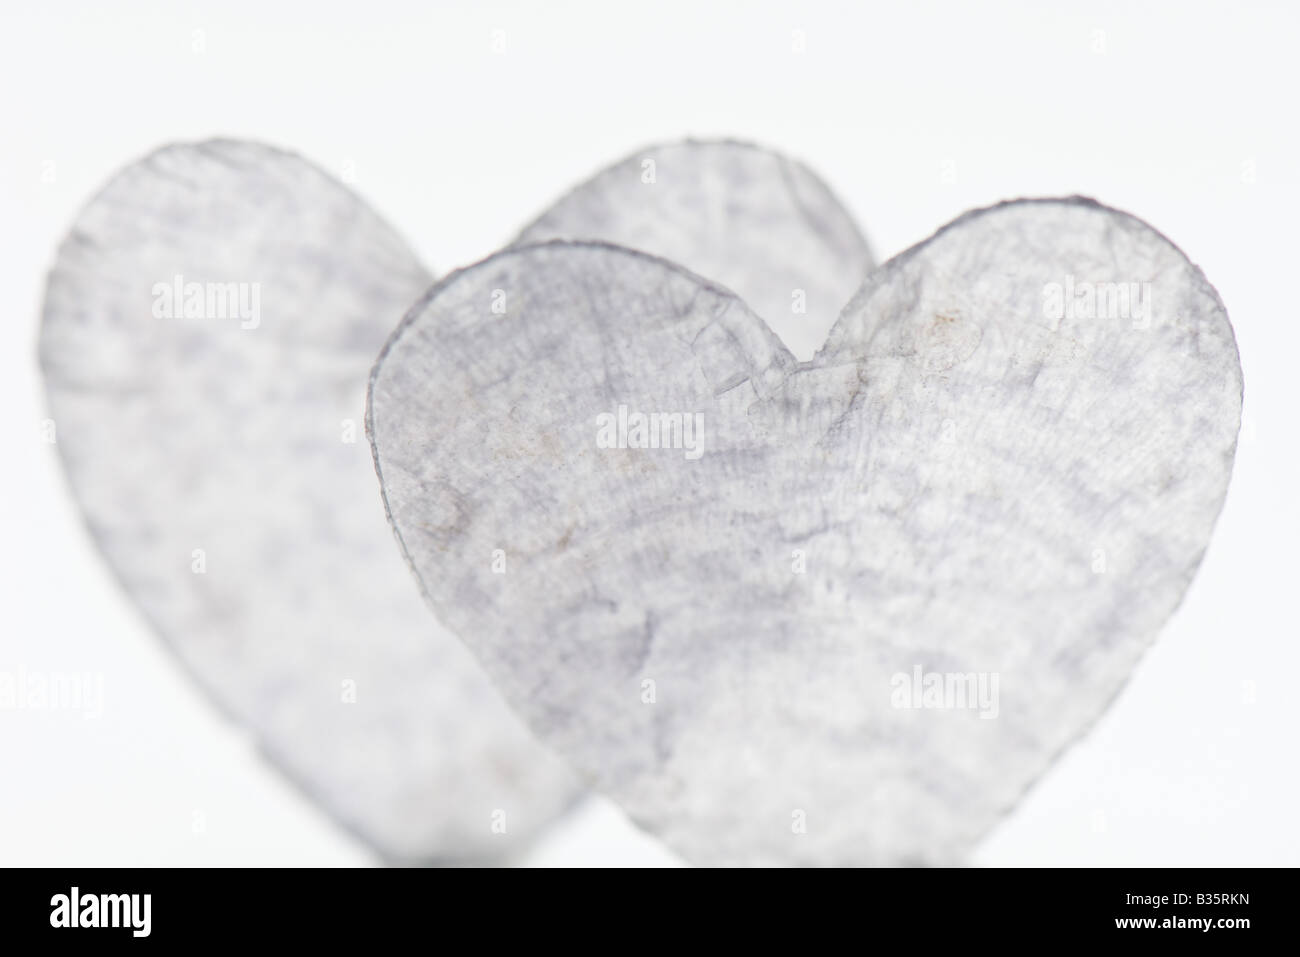 Heart shapes made of glass, heavily scratched - Stock Image